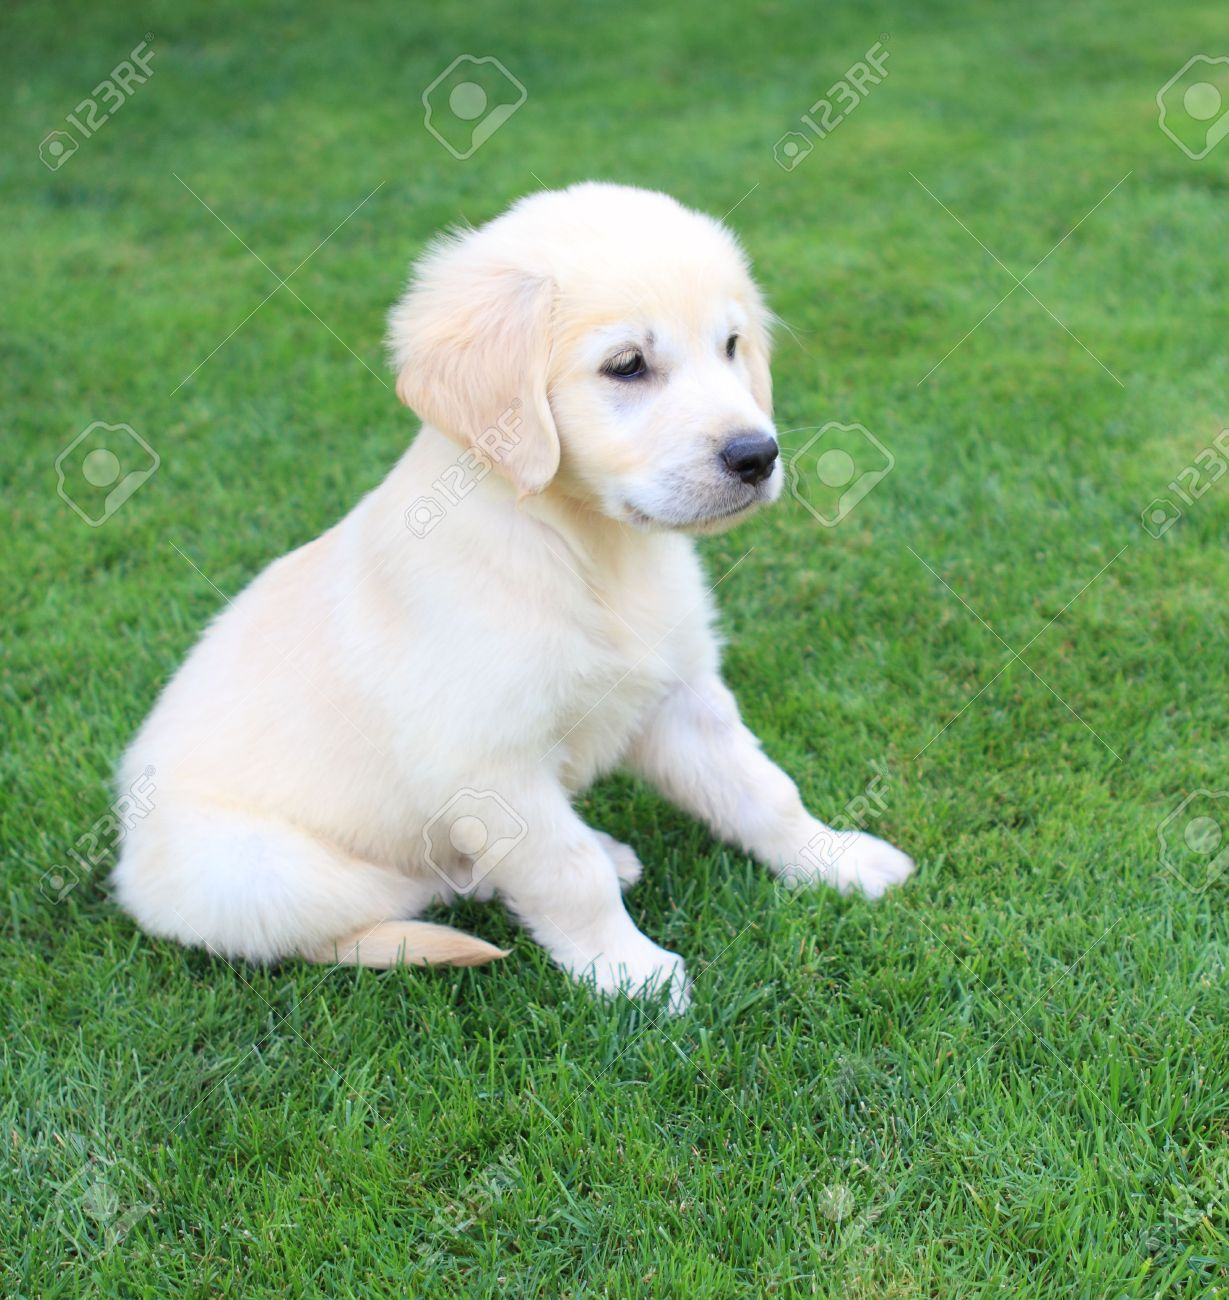 Golden Retriever Labrador Puppy On The Green Grass Stock Photo